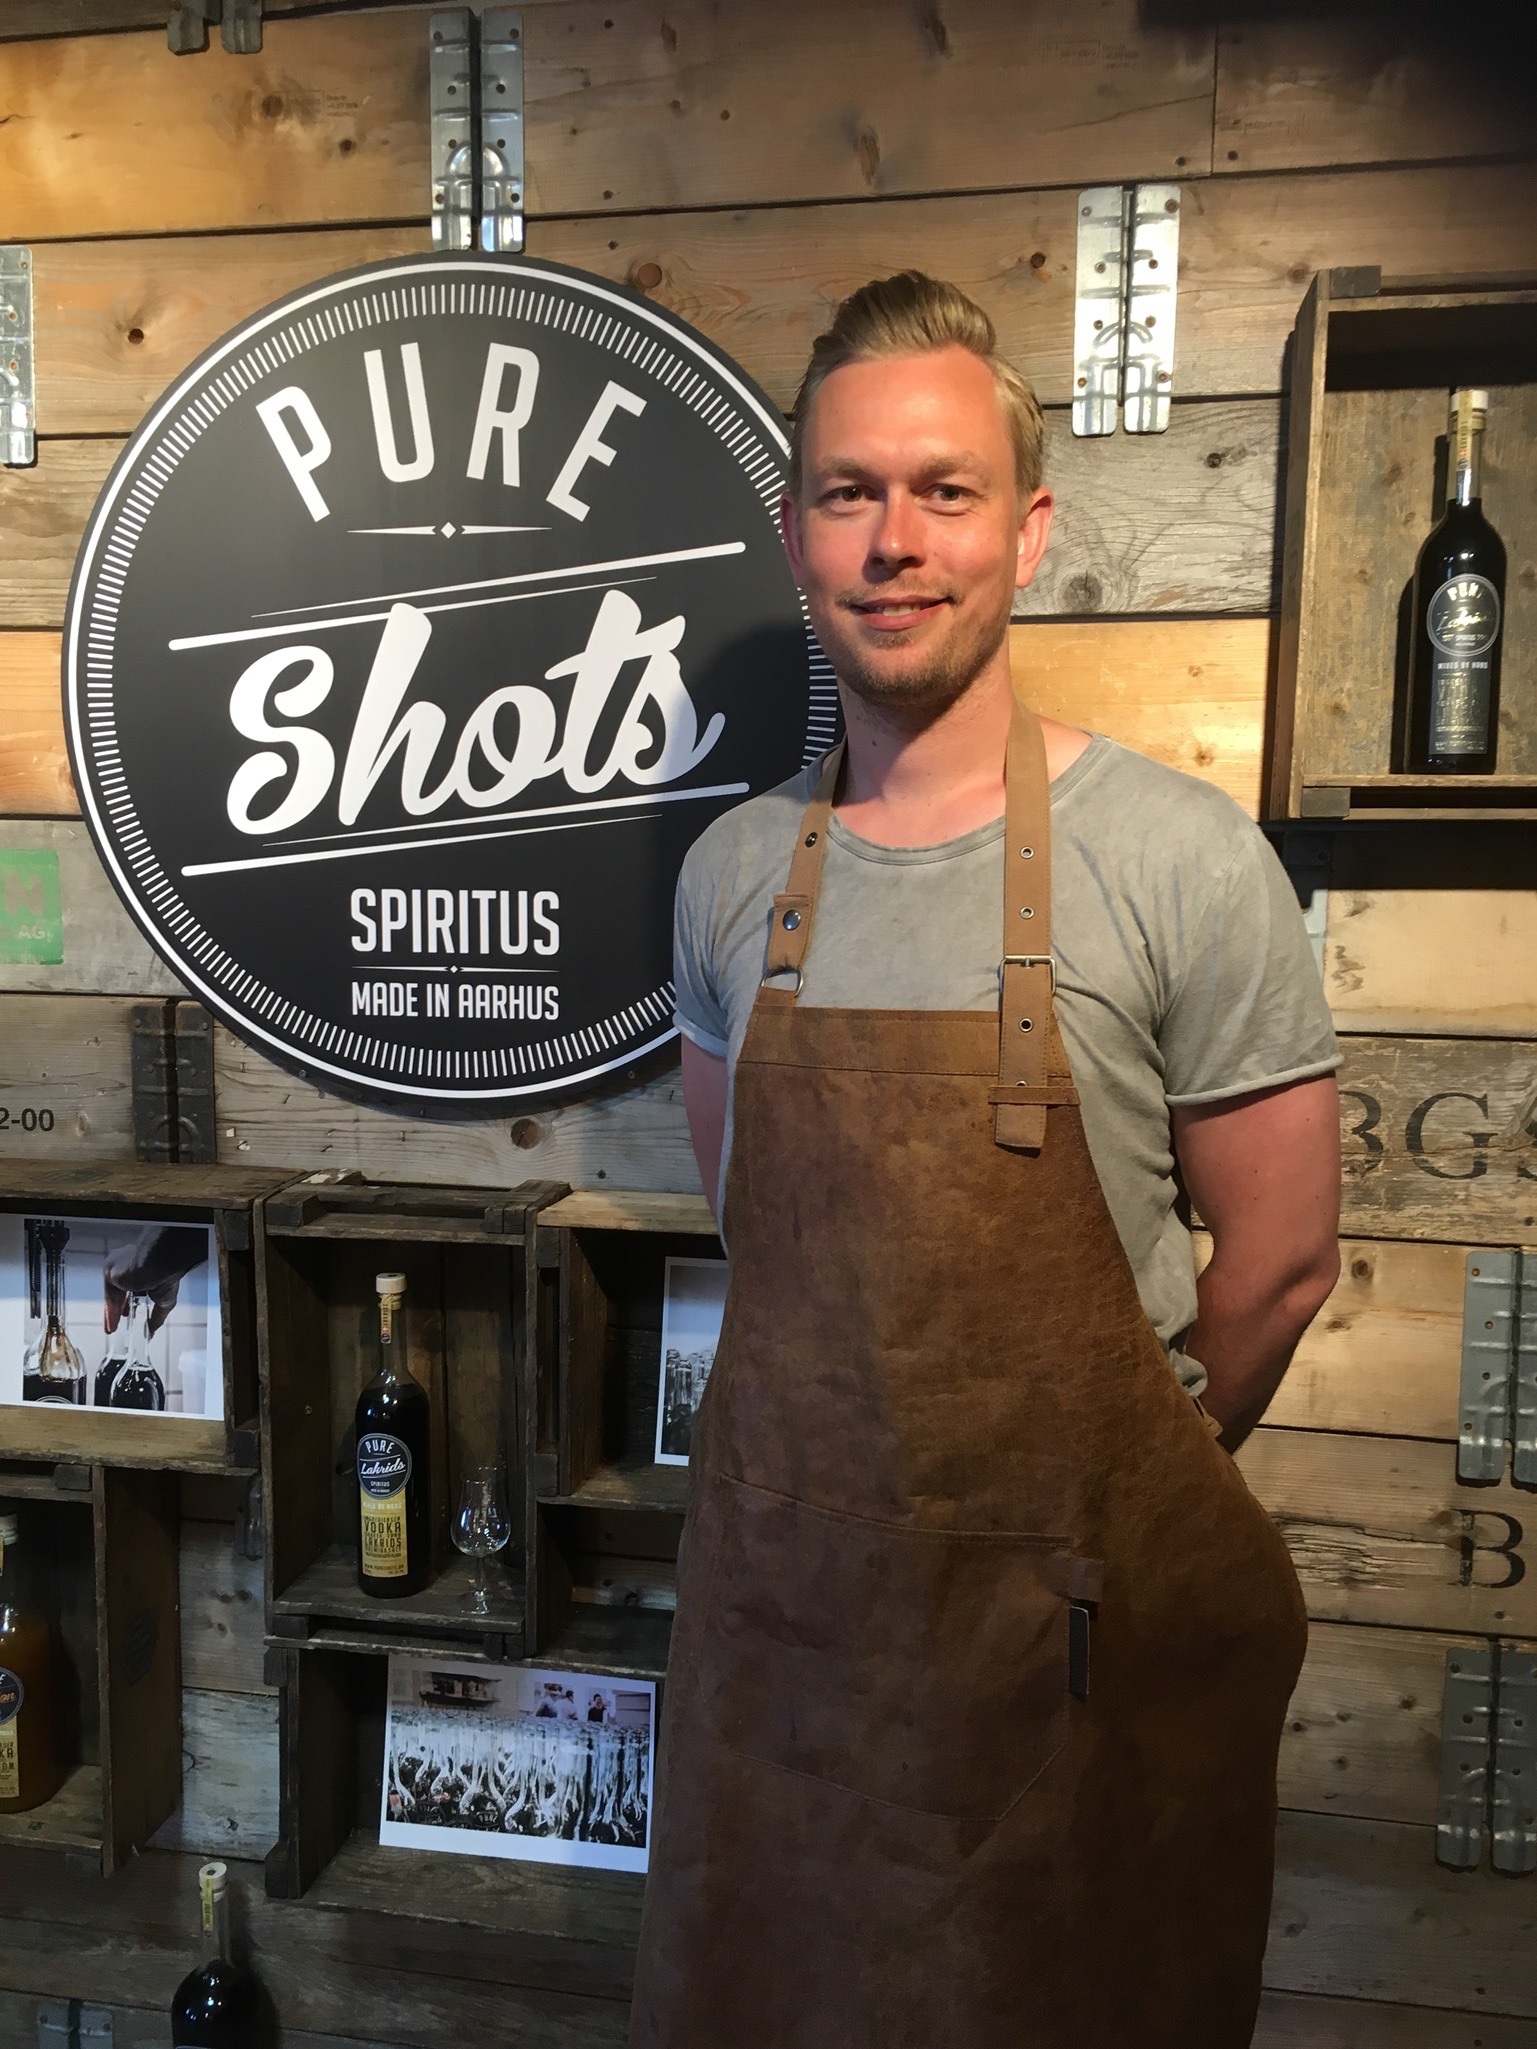 Anders of Pure Shots